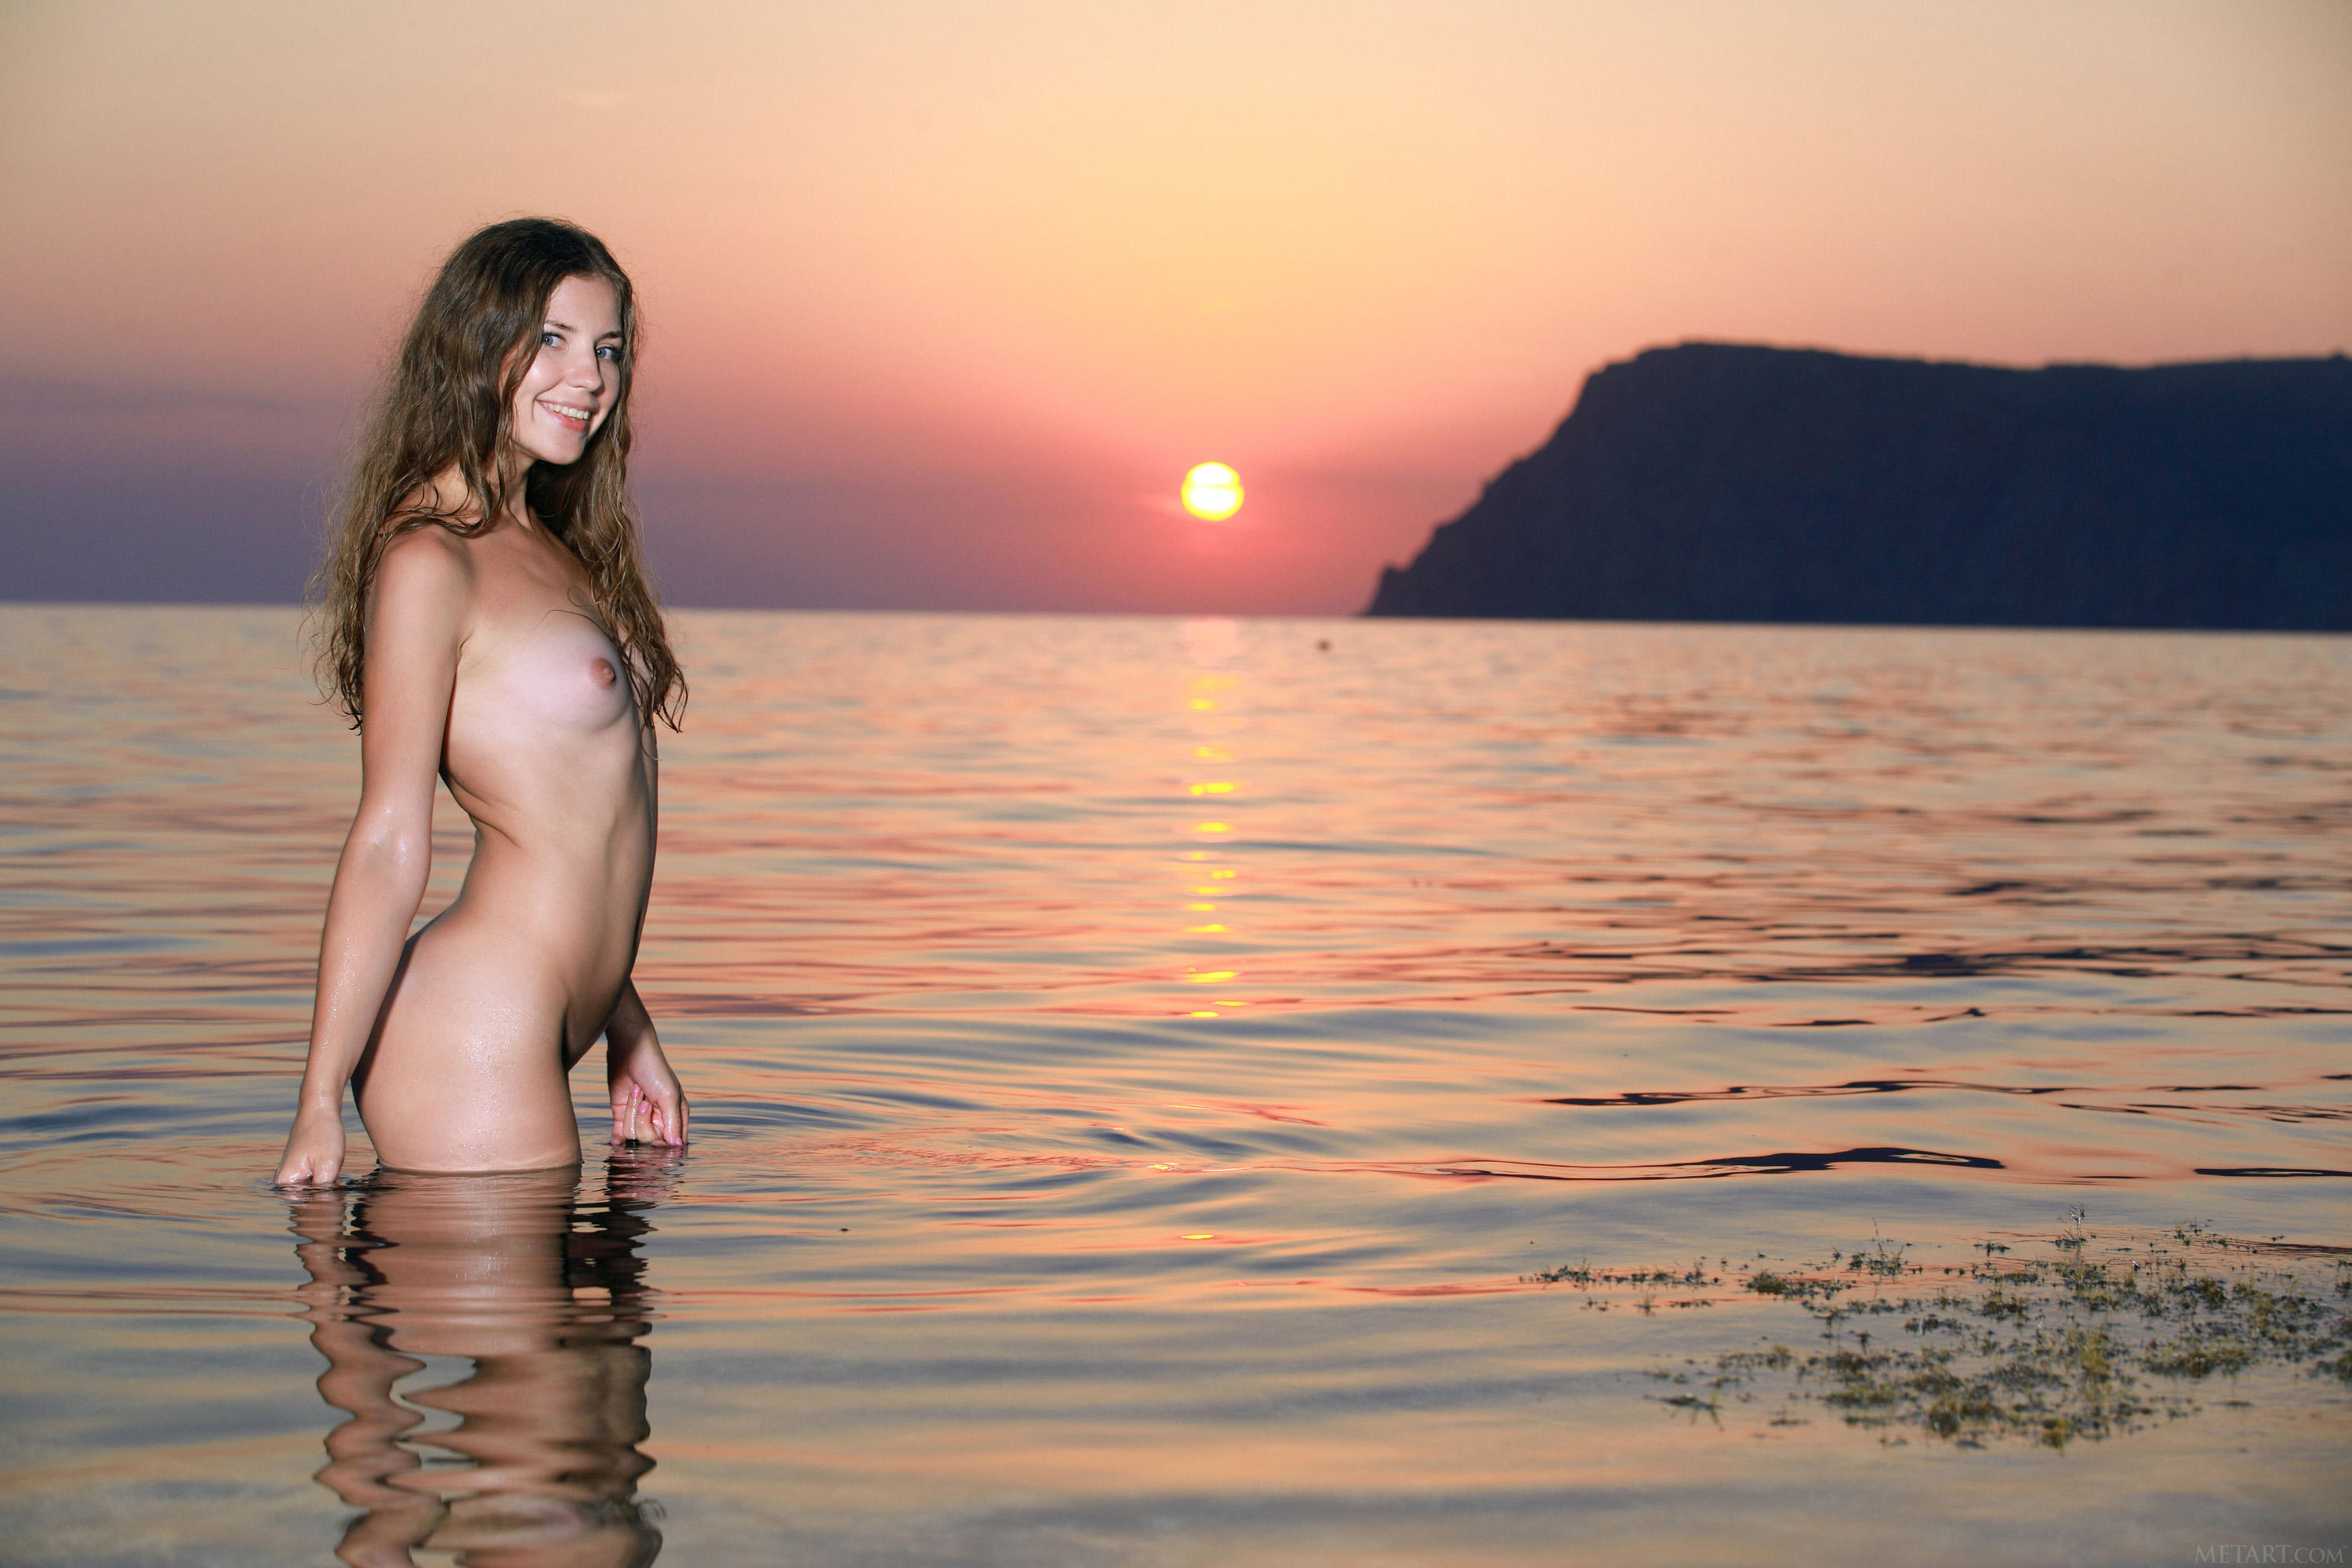 Sunset tan the olly girls nude